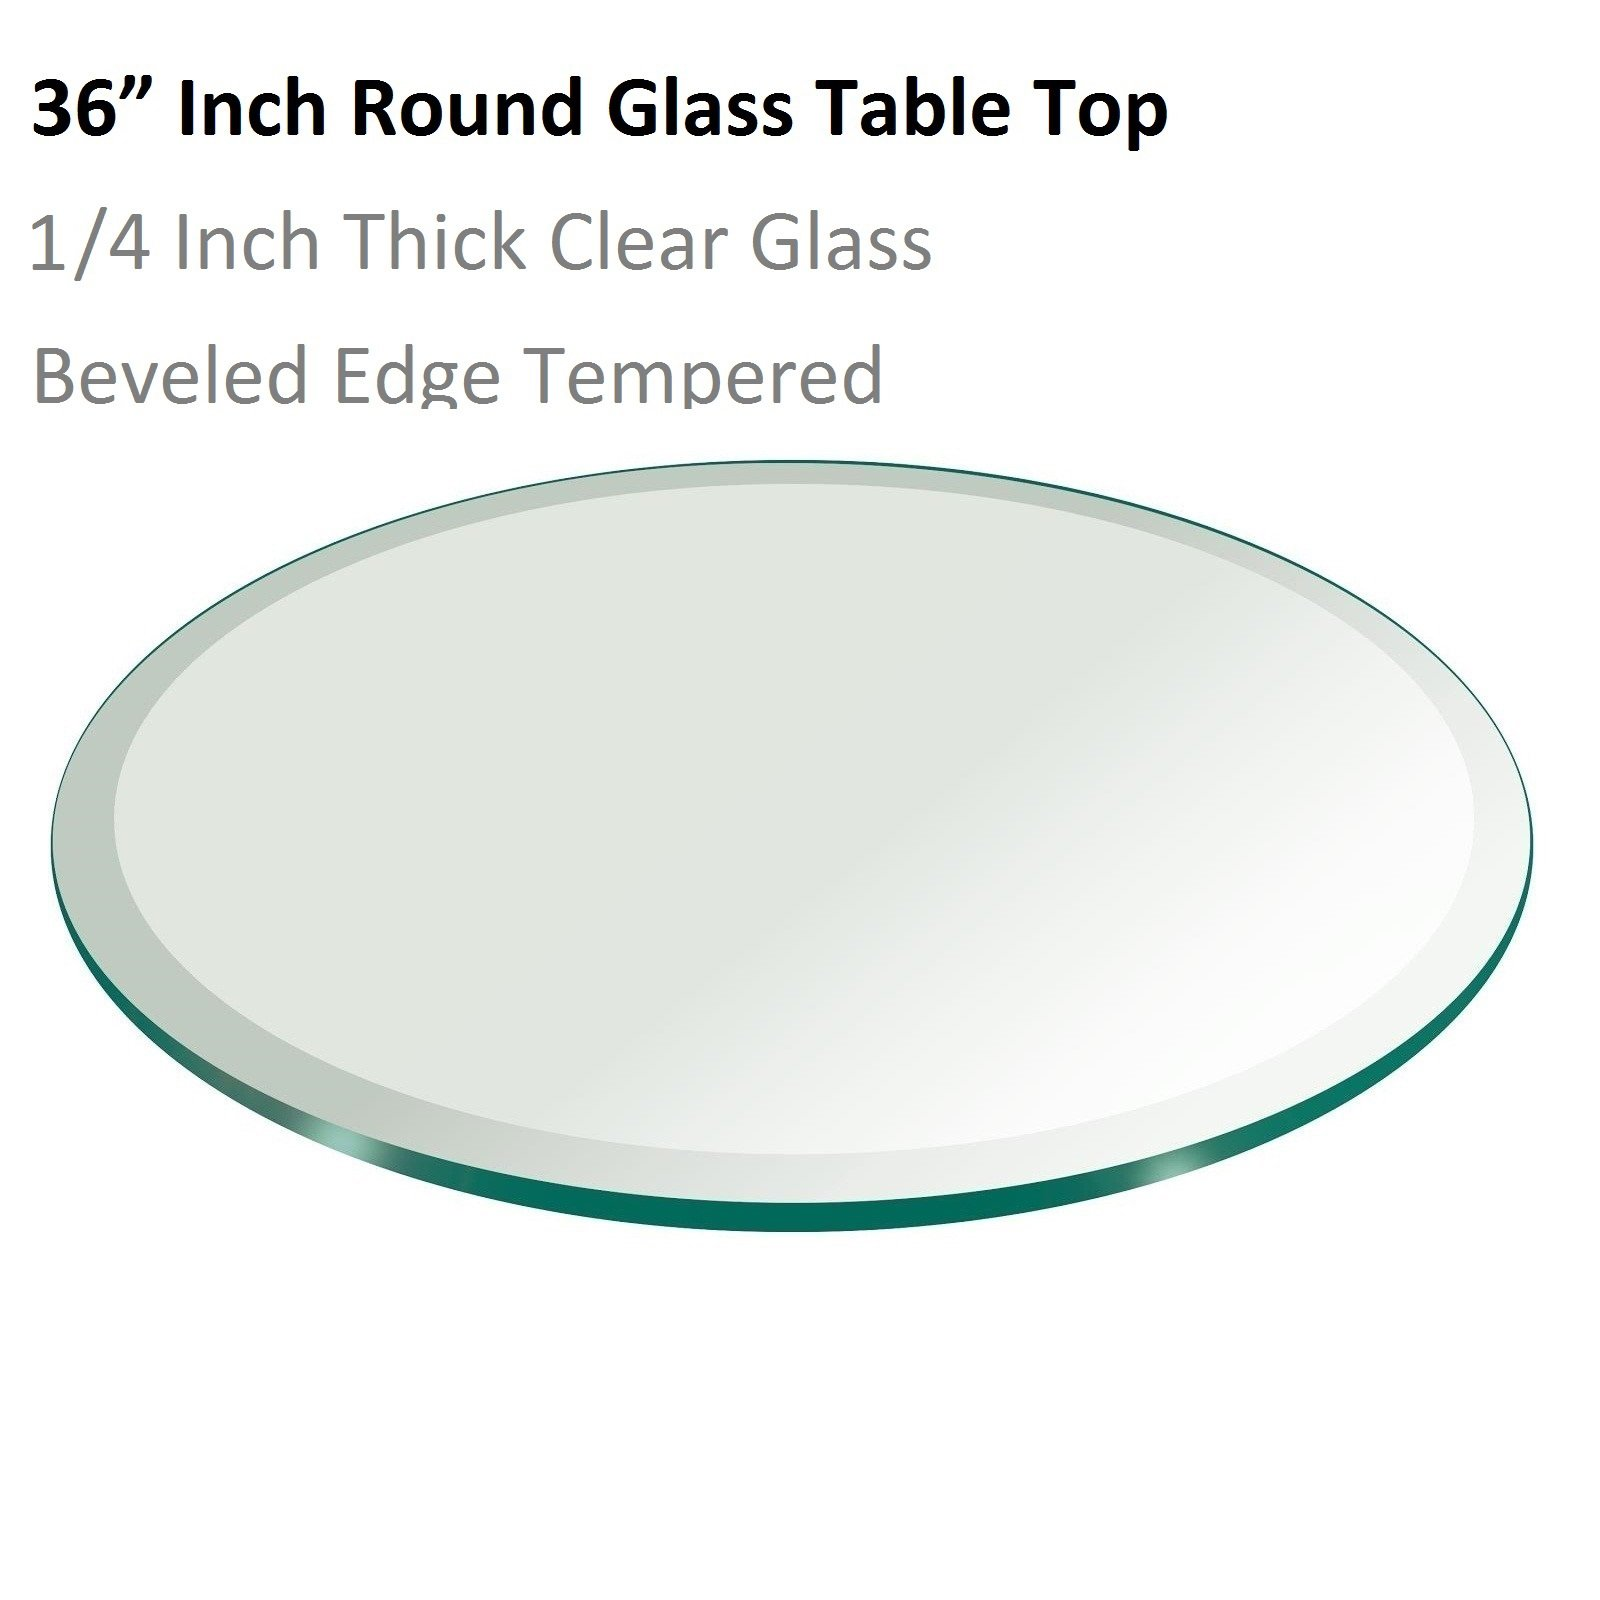 Fab Glass and Mirror 36'' Inch Round Glass Table Top 1/4'' Thick Tempered Beveled Edge